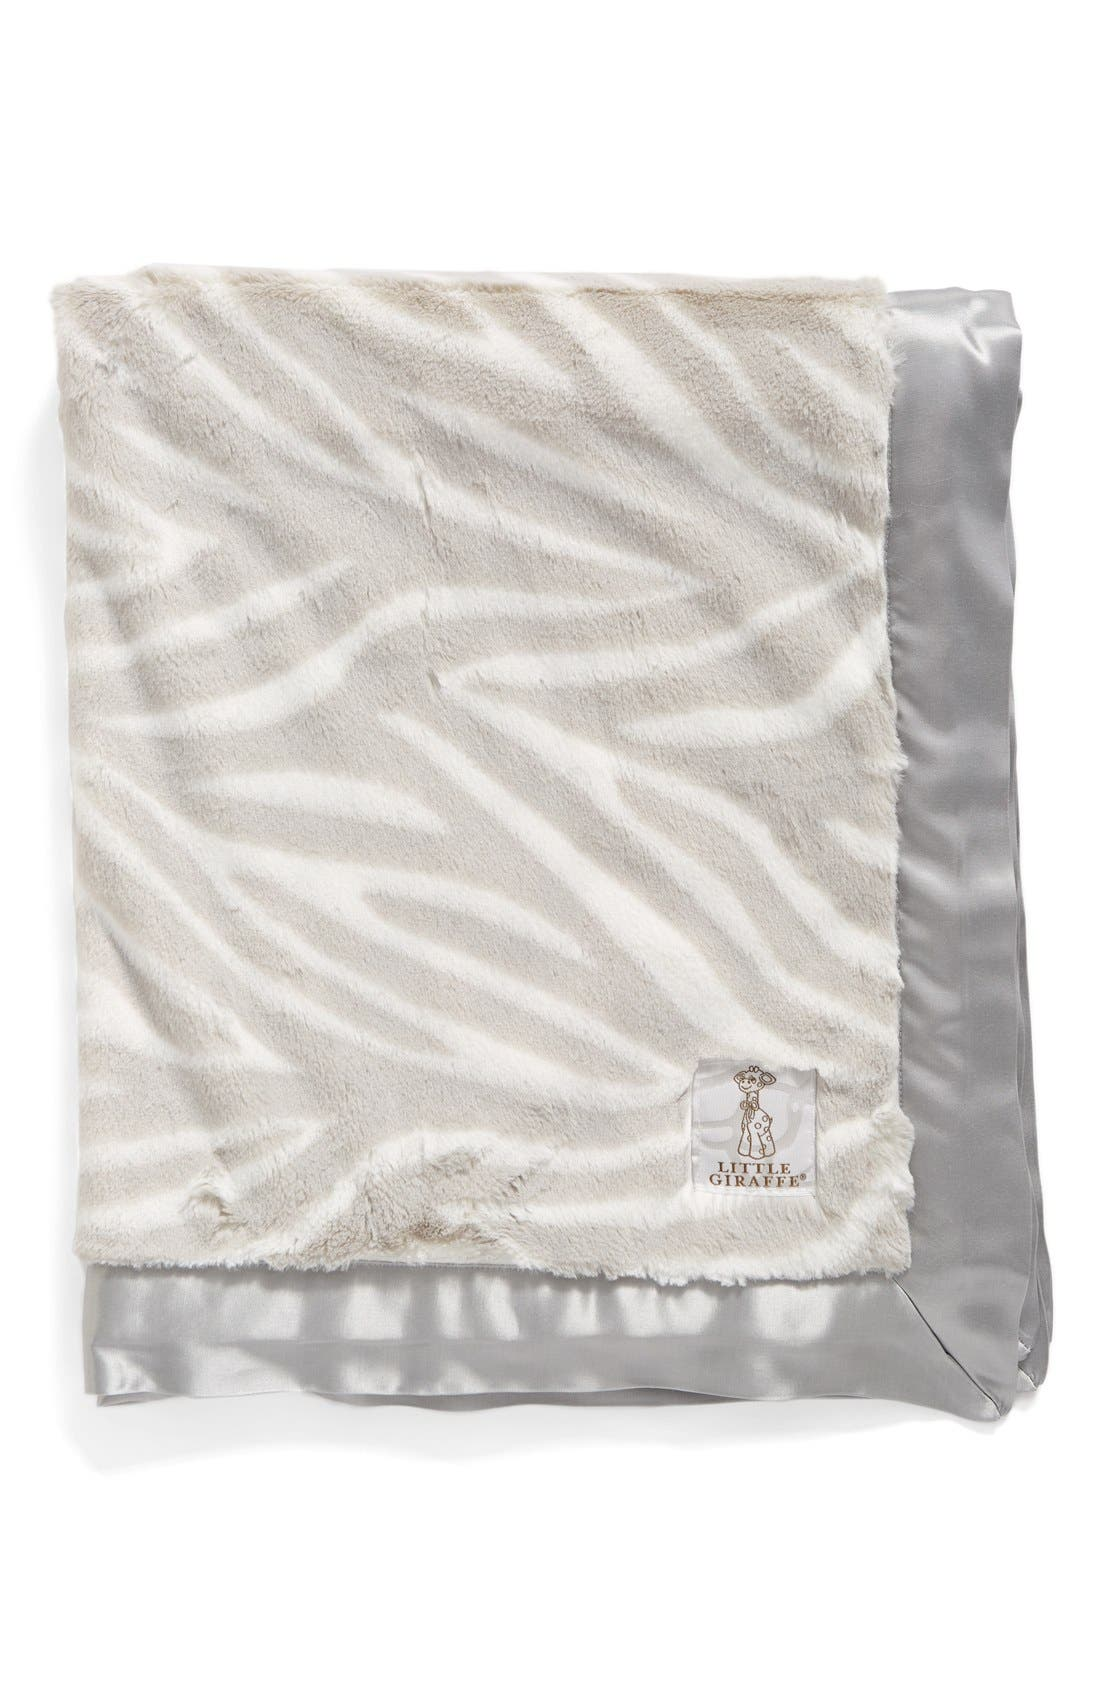 Luxe<sup>™</sup> Zebra Print Blanket,                         Main,                         color, SILVER